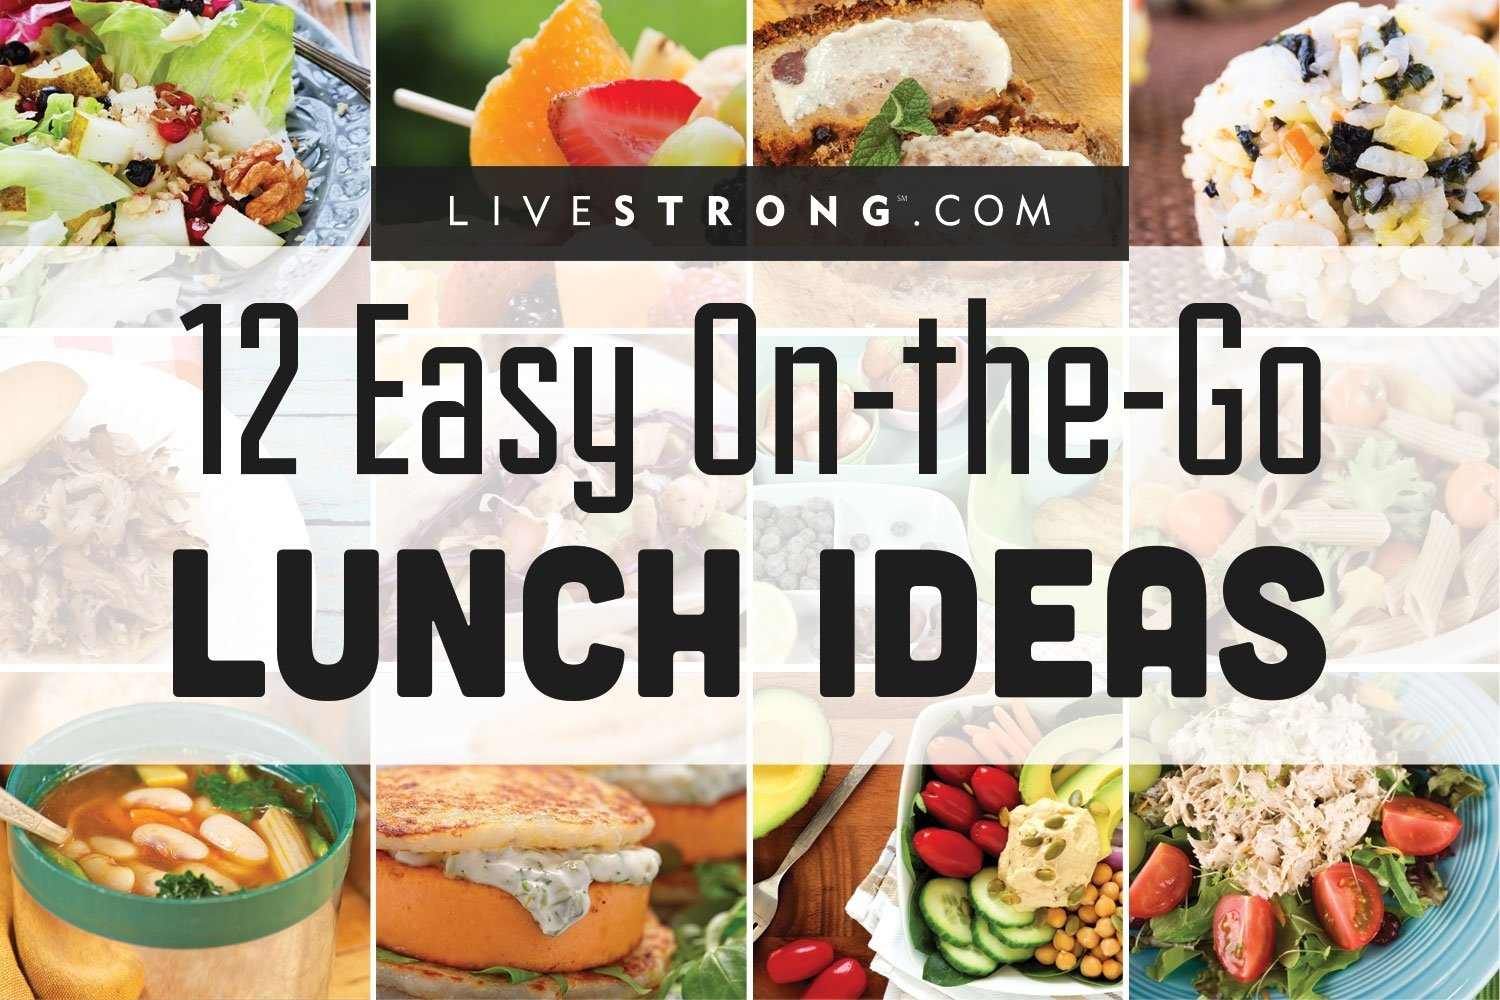 10 stylish healthy quick lunch ideas for work